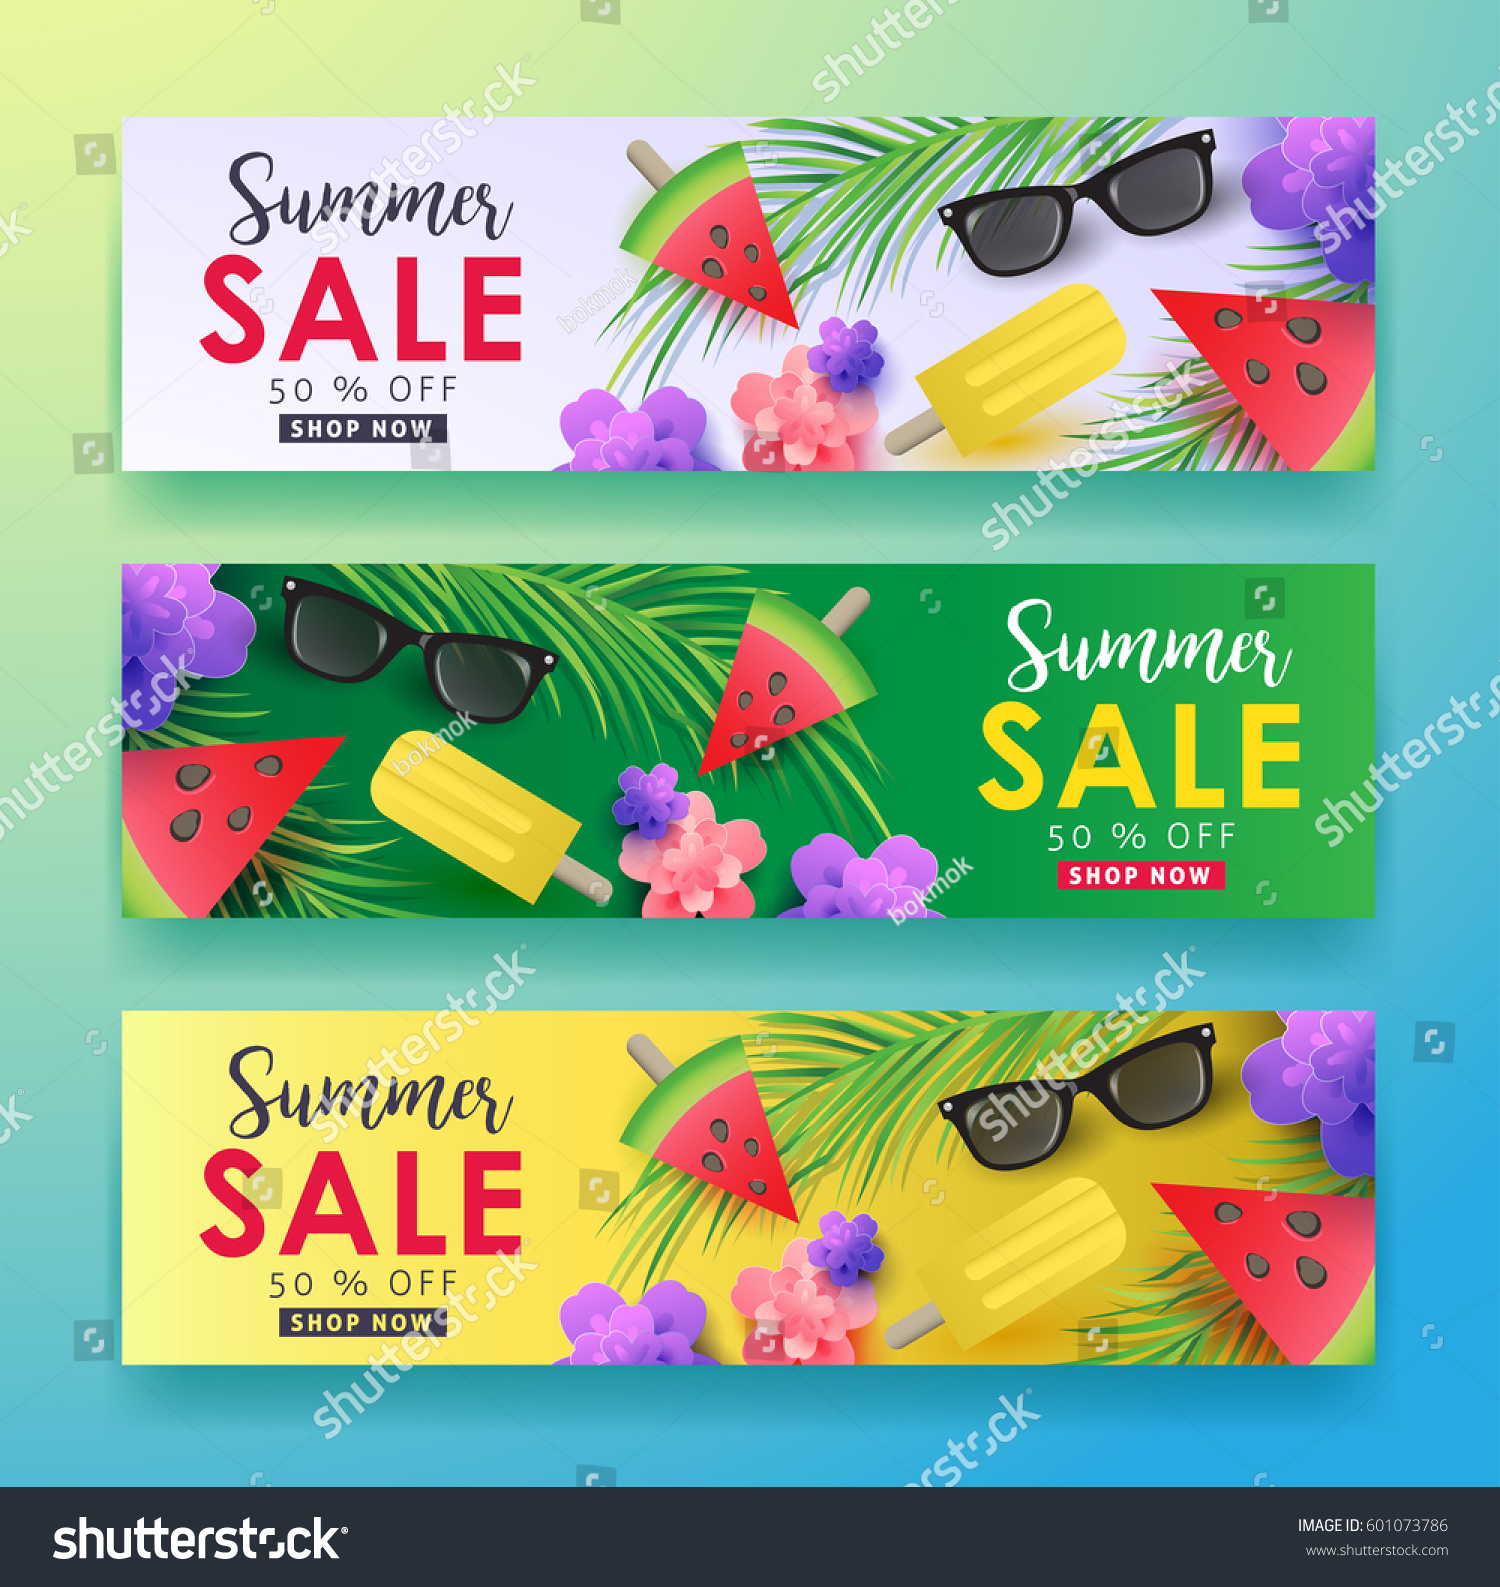 Summer Sale Background Layout Banners Wallpaperflyers Invitation 601073786